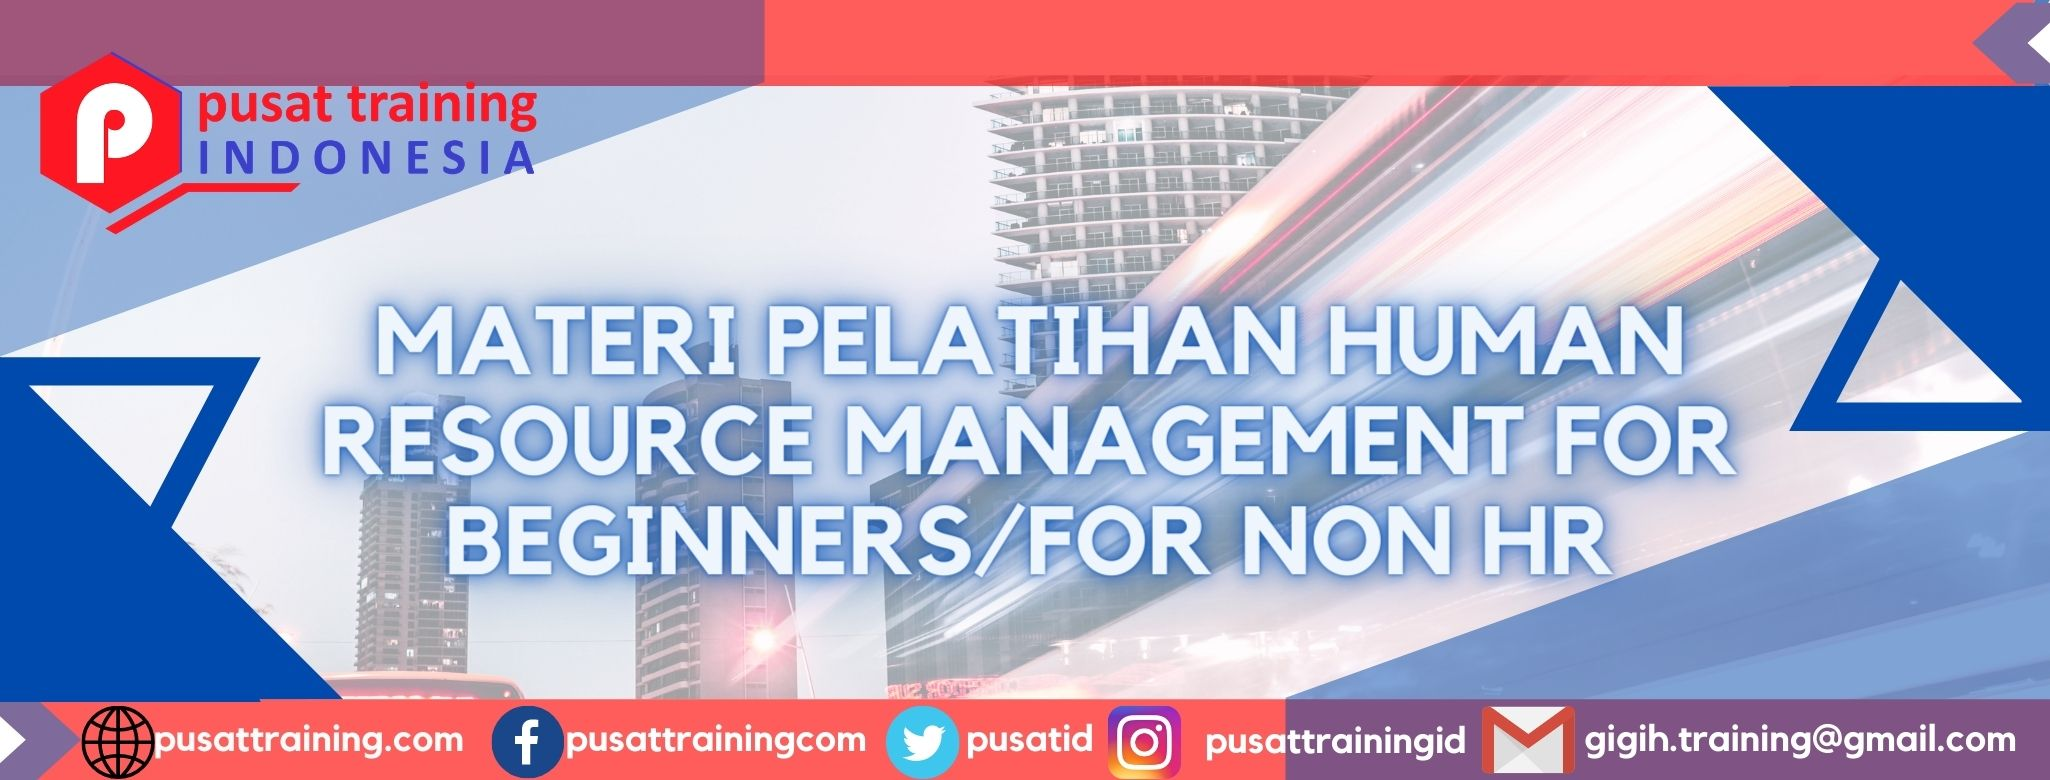 HUMAN RESOURCE MANAGEMENT FOR BEGINNERS FOR NON HR TRAINING